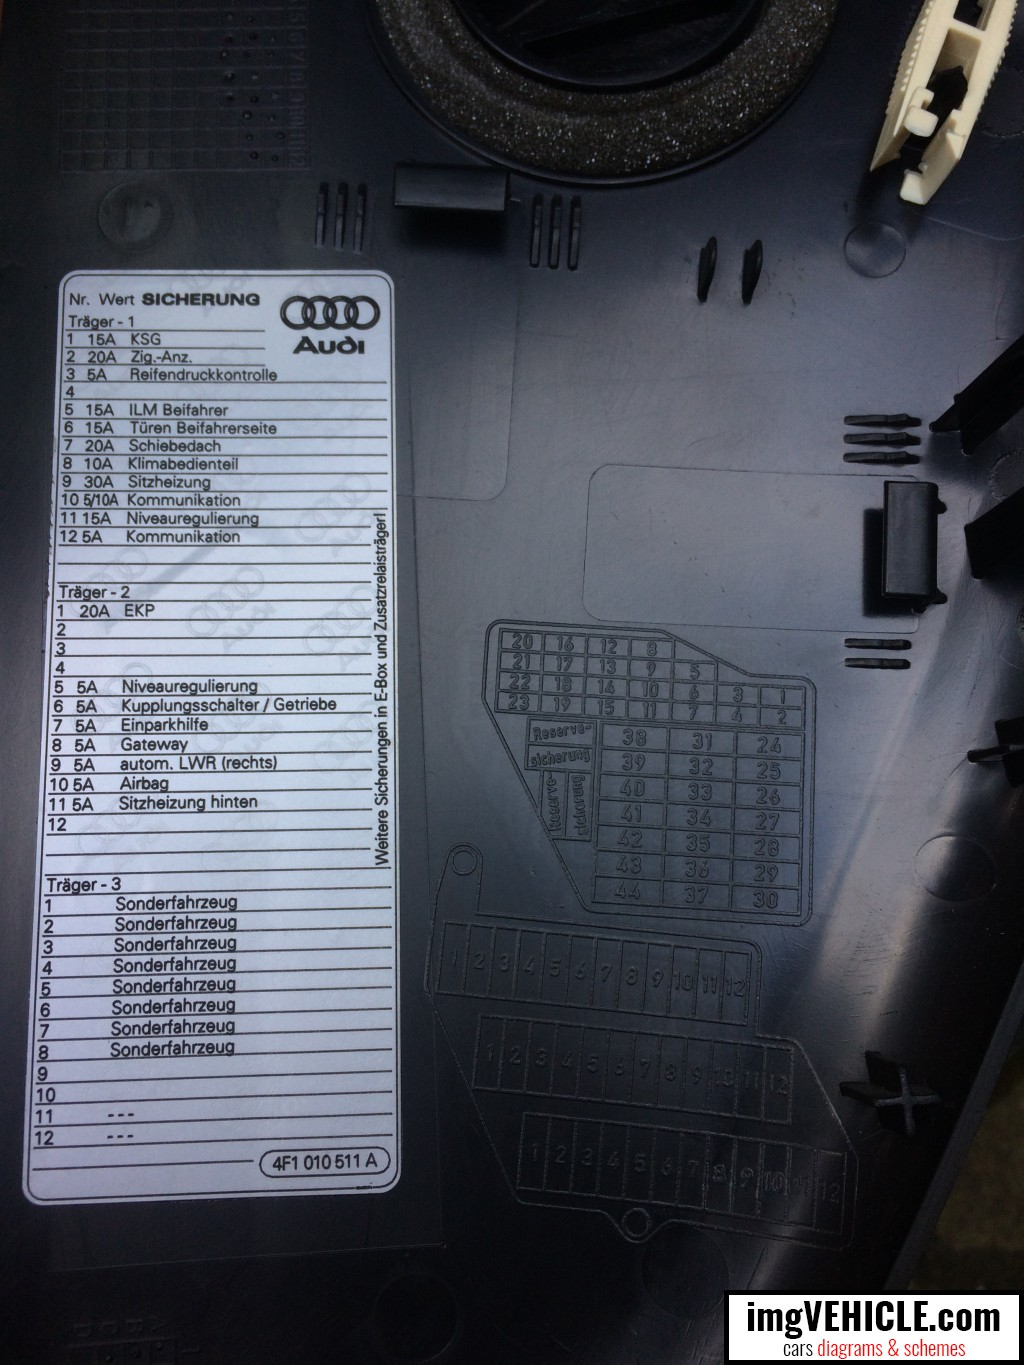 small resolution of audi a6 c6 fuse diagram wiring diagram advance fuse box audi a6 c6 a6 c6 fuse